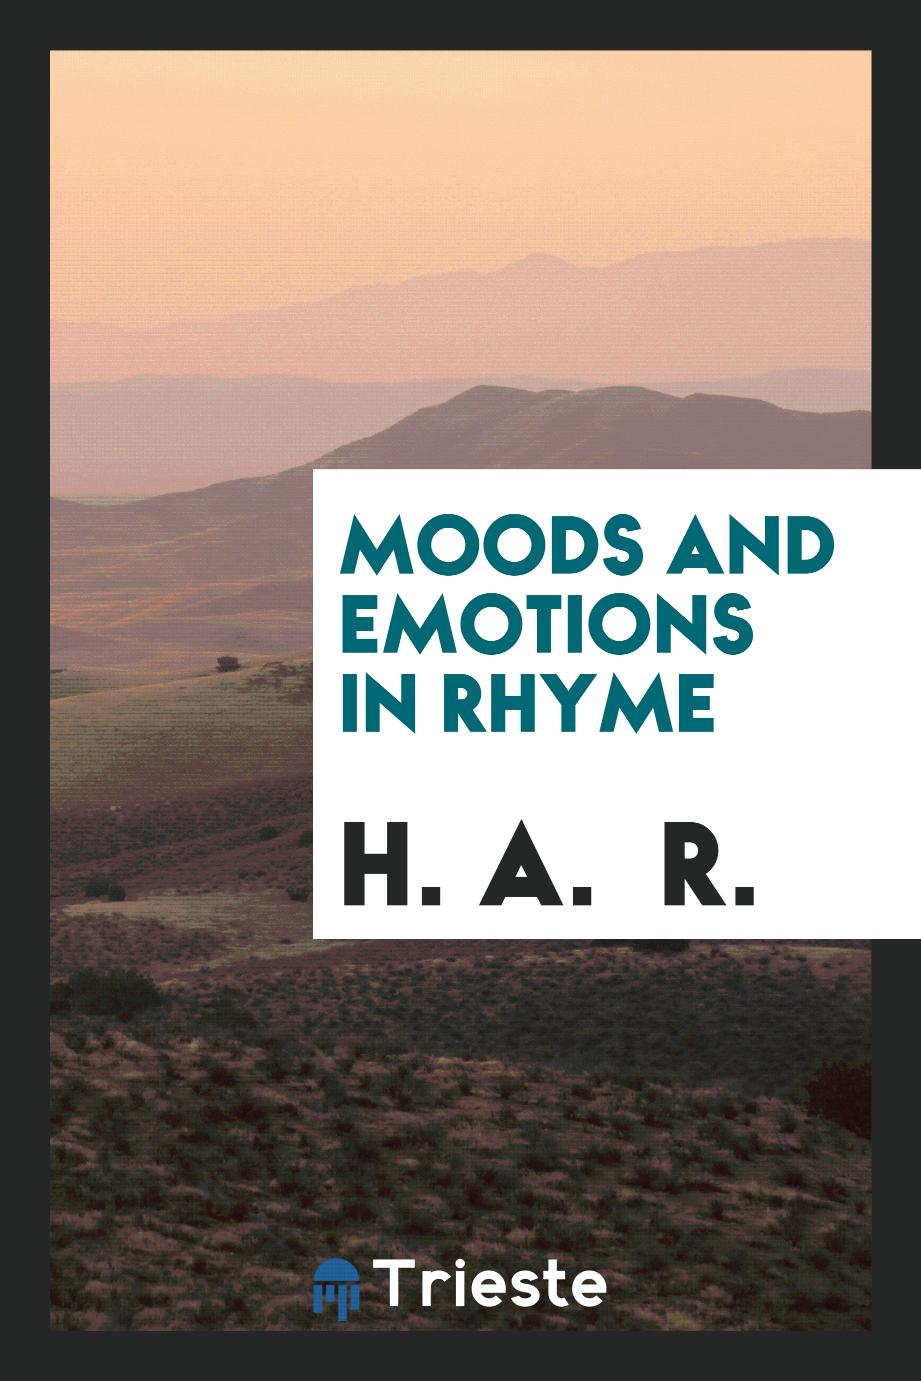 Moods and emotions in rhyme